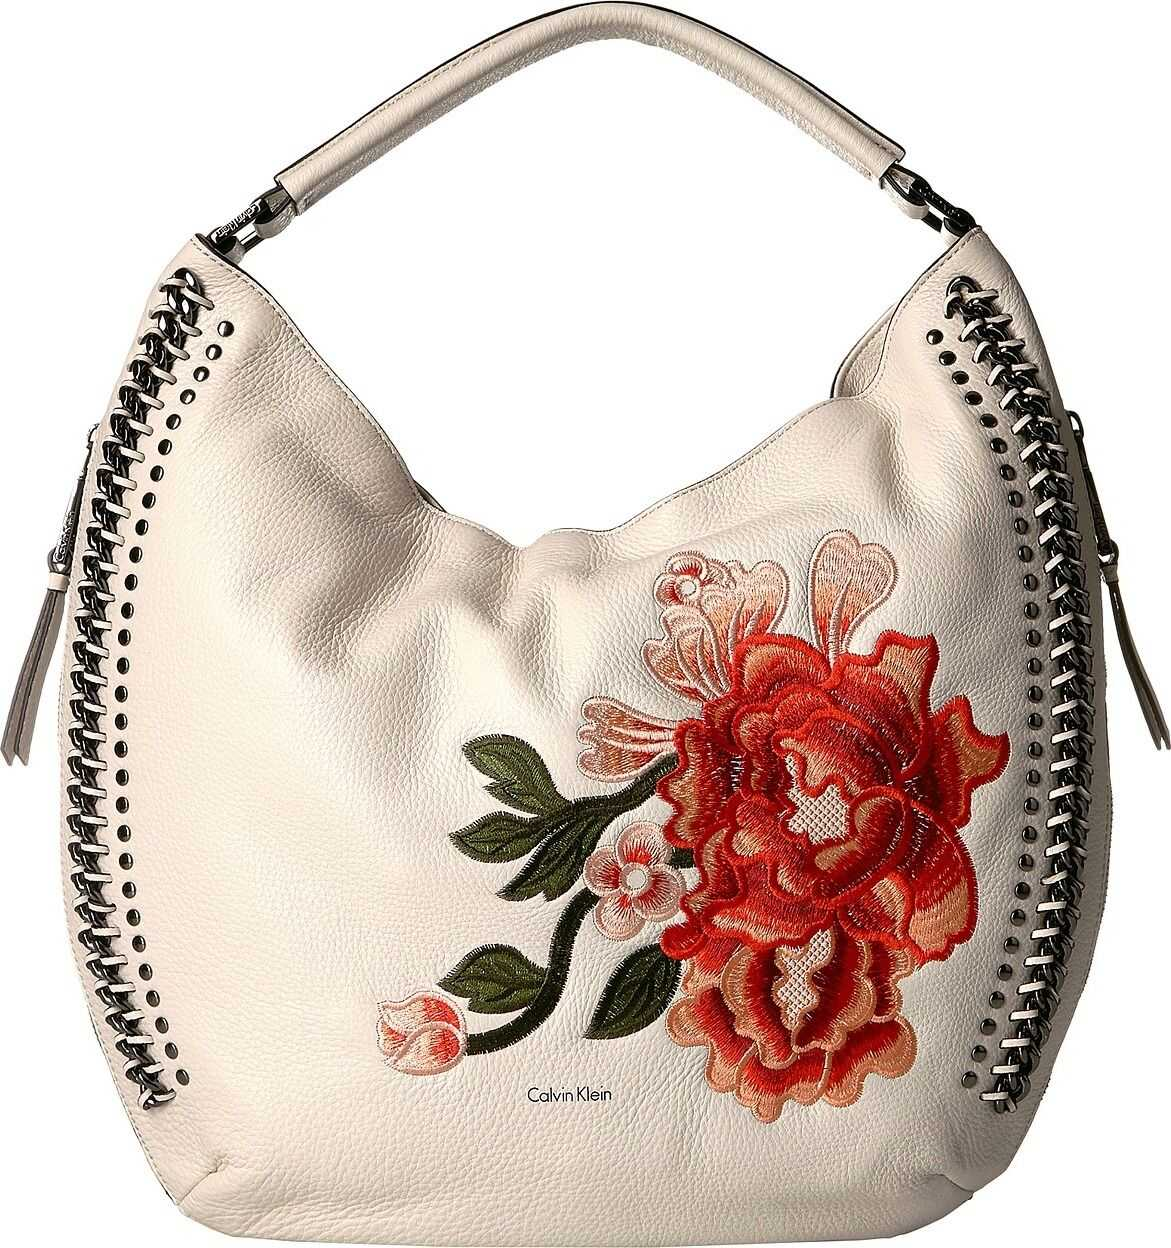 Calvin Klein Flower Embroidery Hobo Floral White